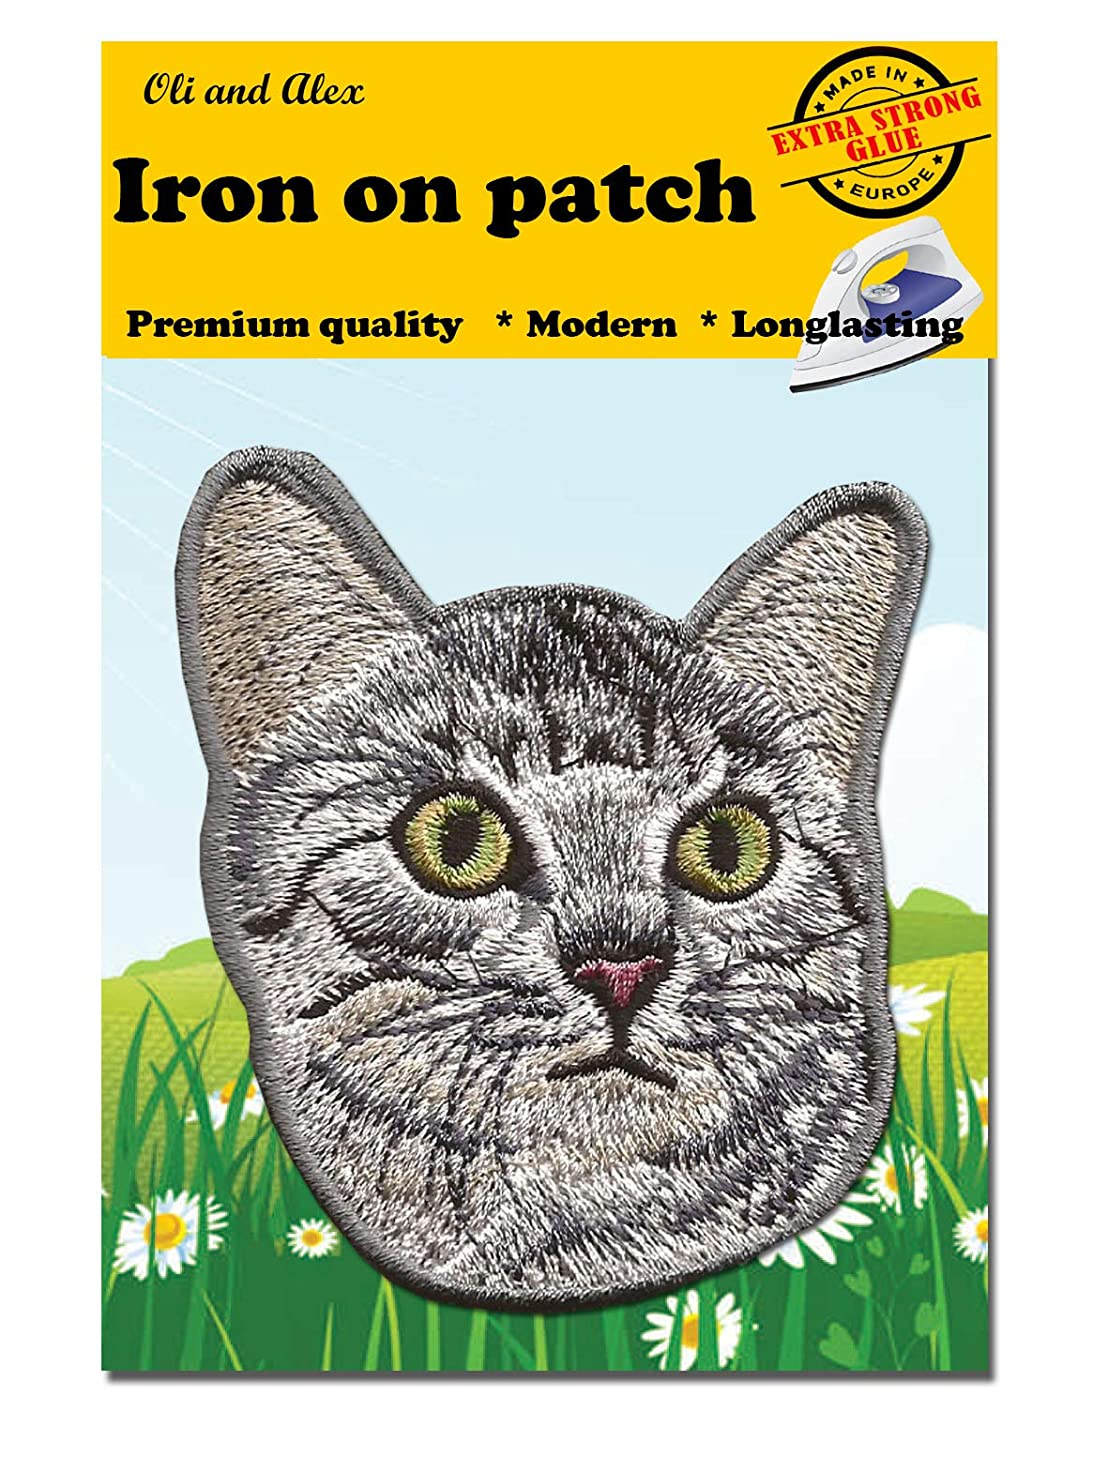 A-112, Cat DIY Embroidered Sew Iron on Patch 3.07 by 3.50 inches(7.8 x 8.9 cm)